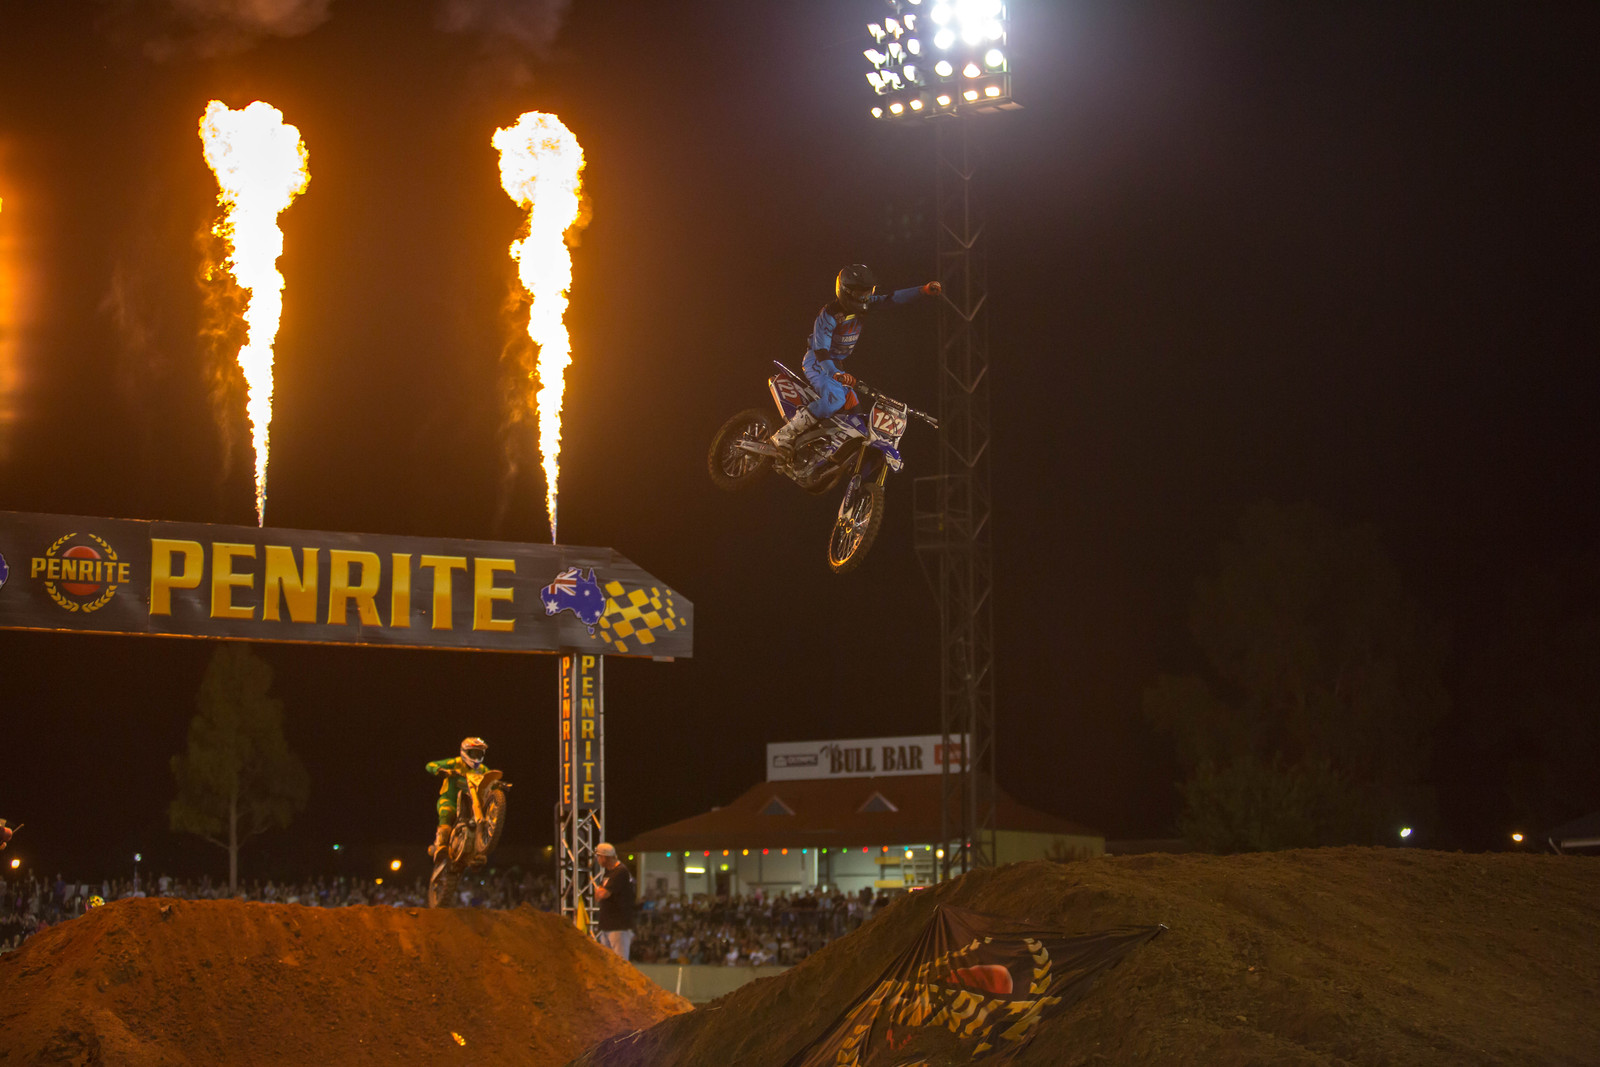 Dan Reardon - Photo Blast: Australian Supercross Championship from Adelaide - Motocross Pictures - Vital MX